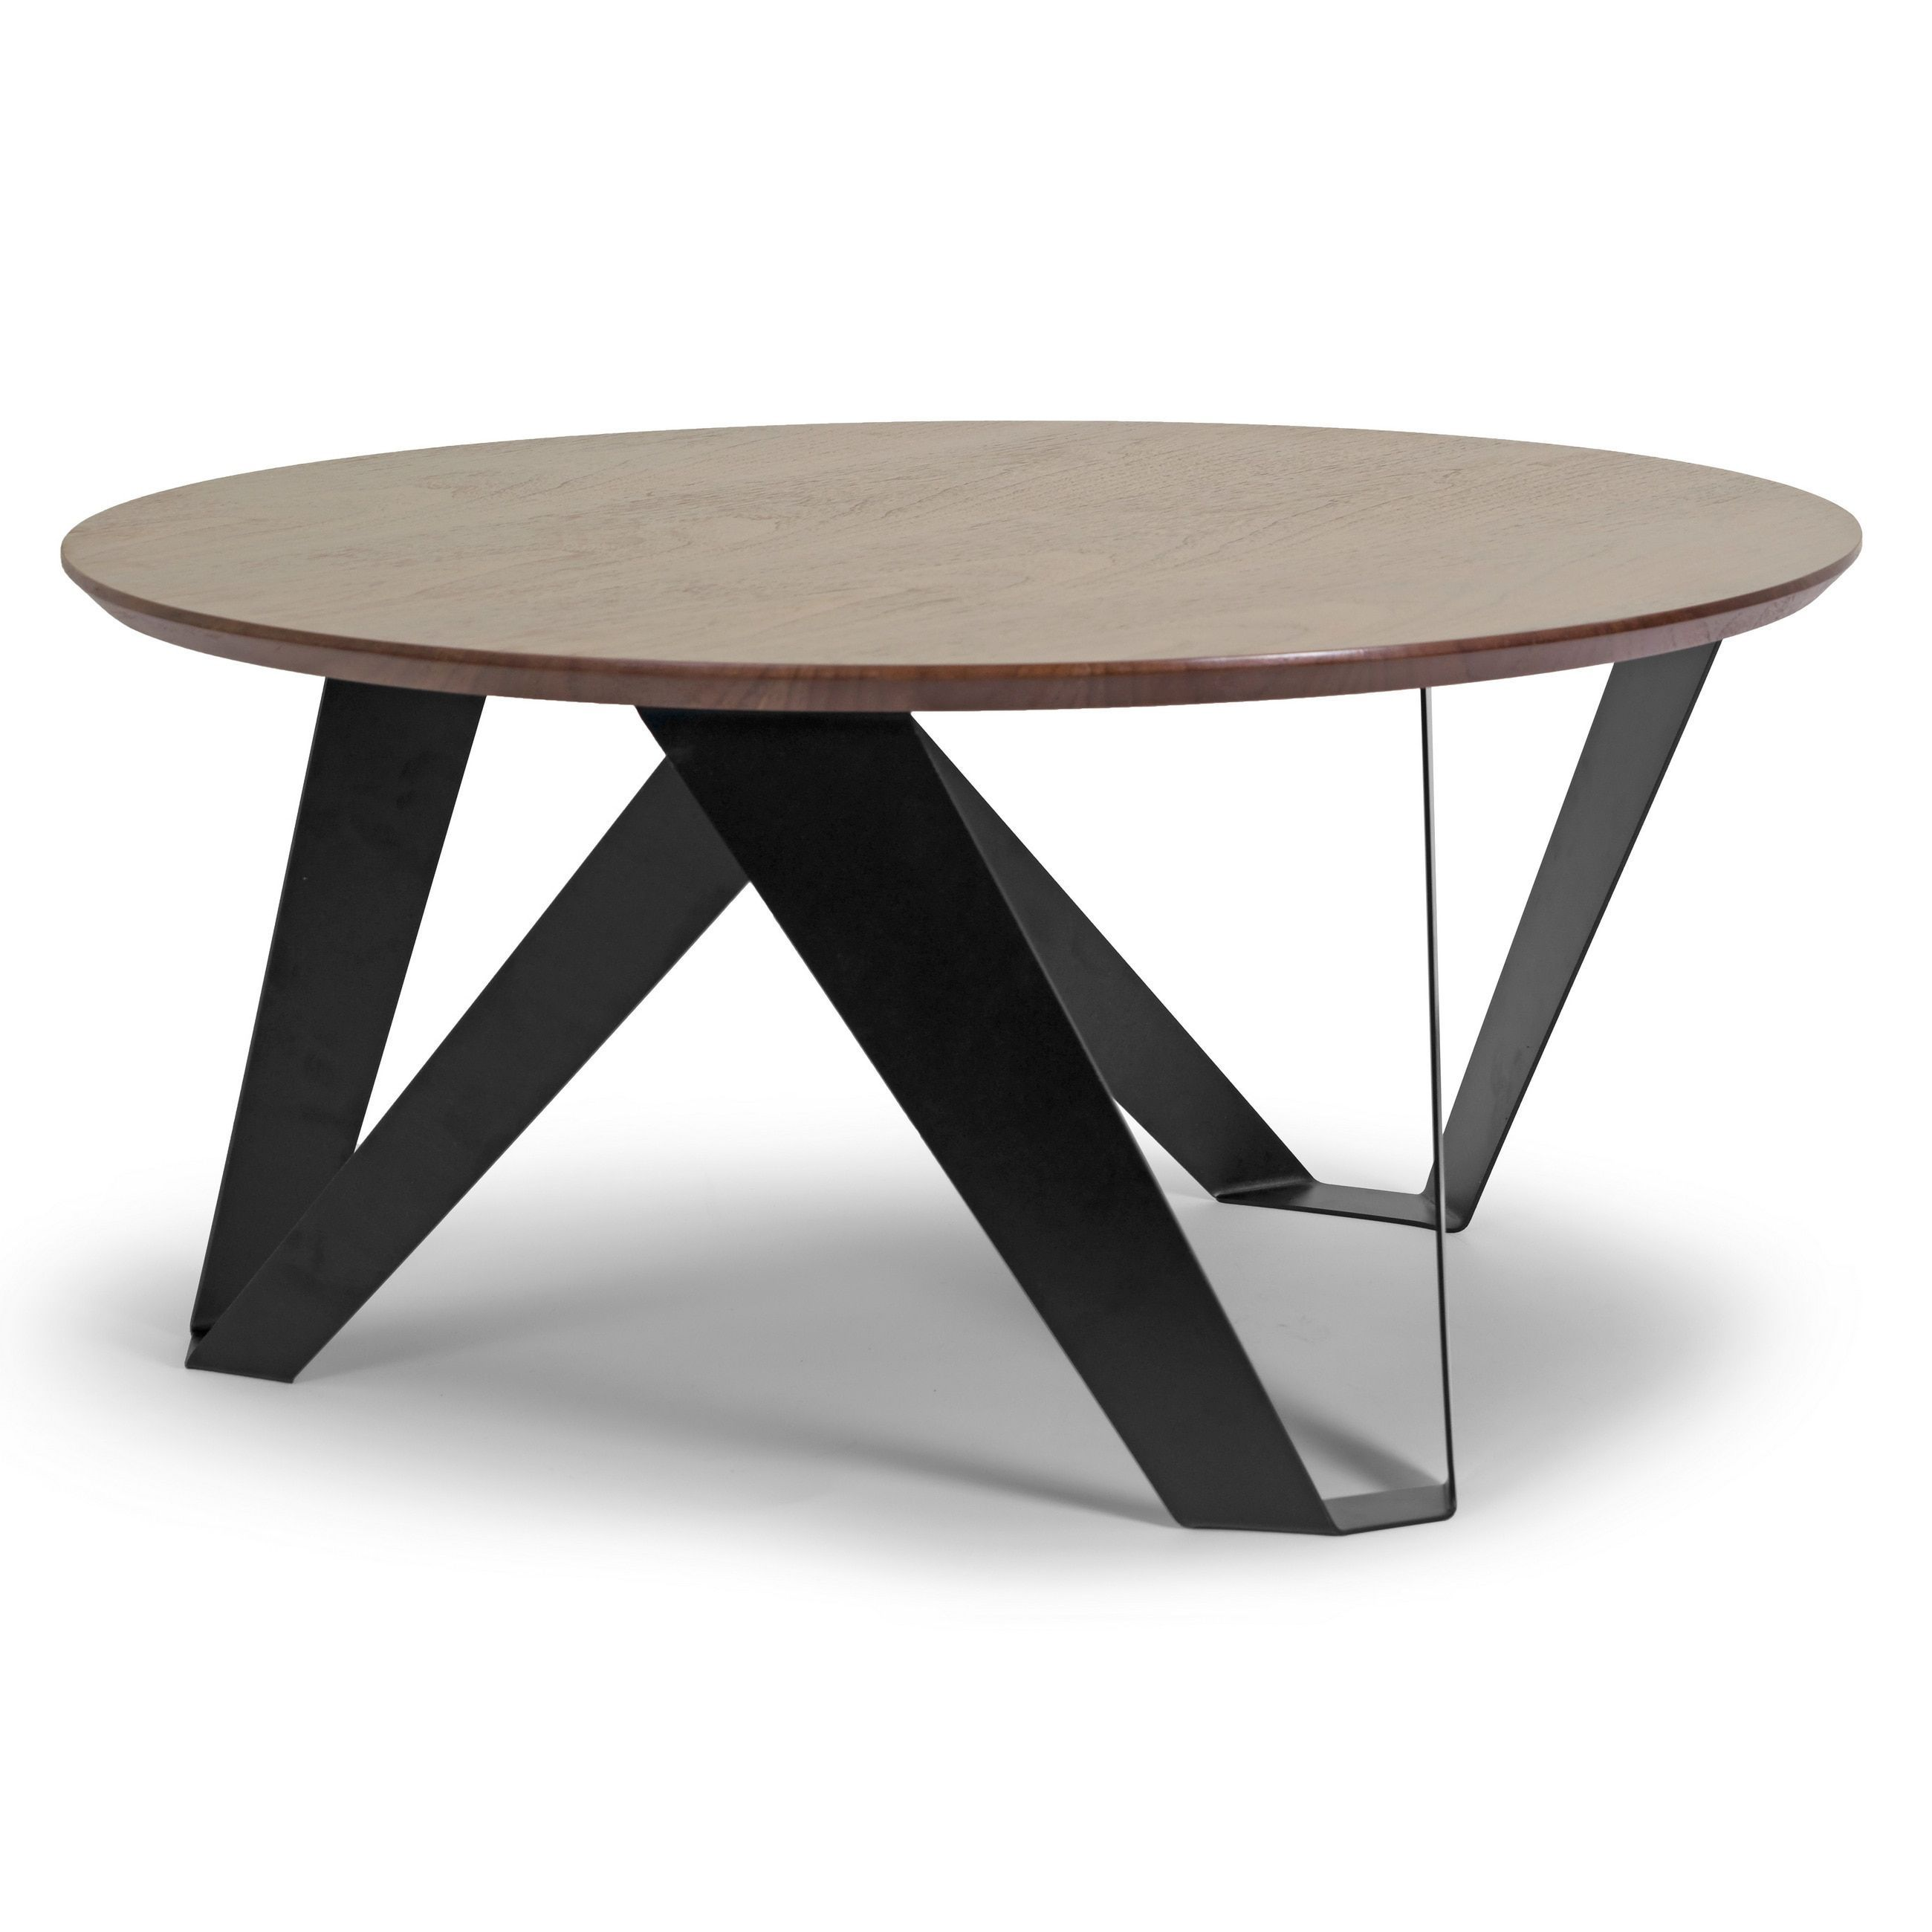 Glamour Aimi Walnut Finish Round Modern Coffee Table With Black Metal Legs